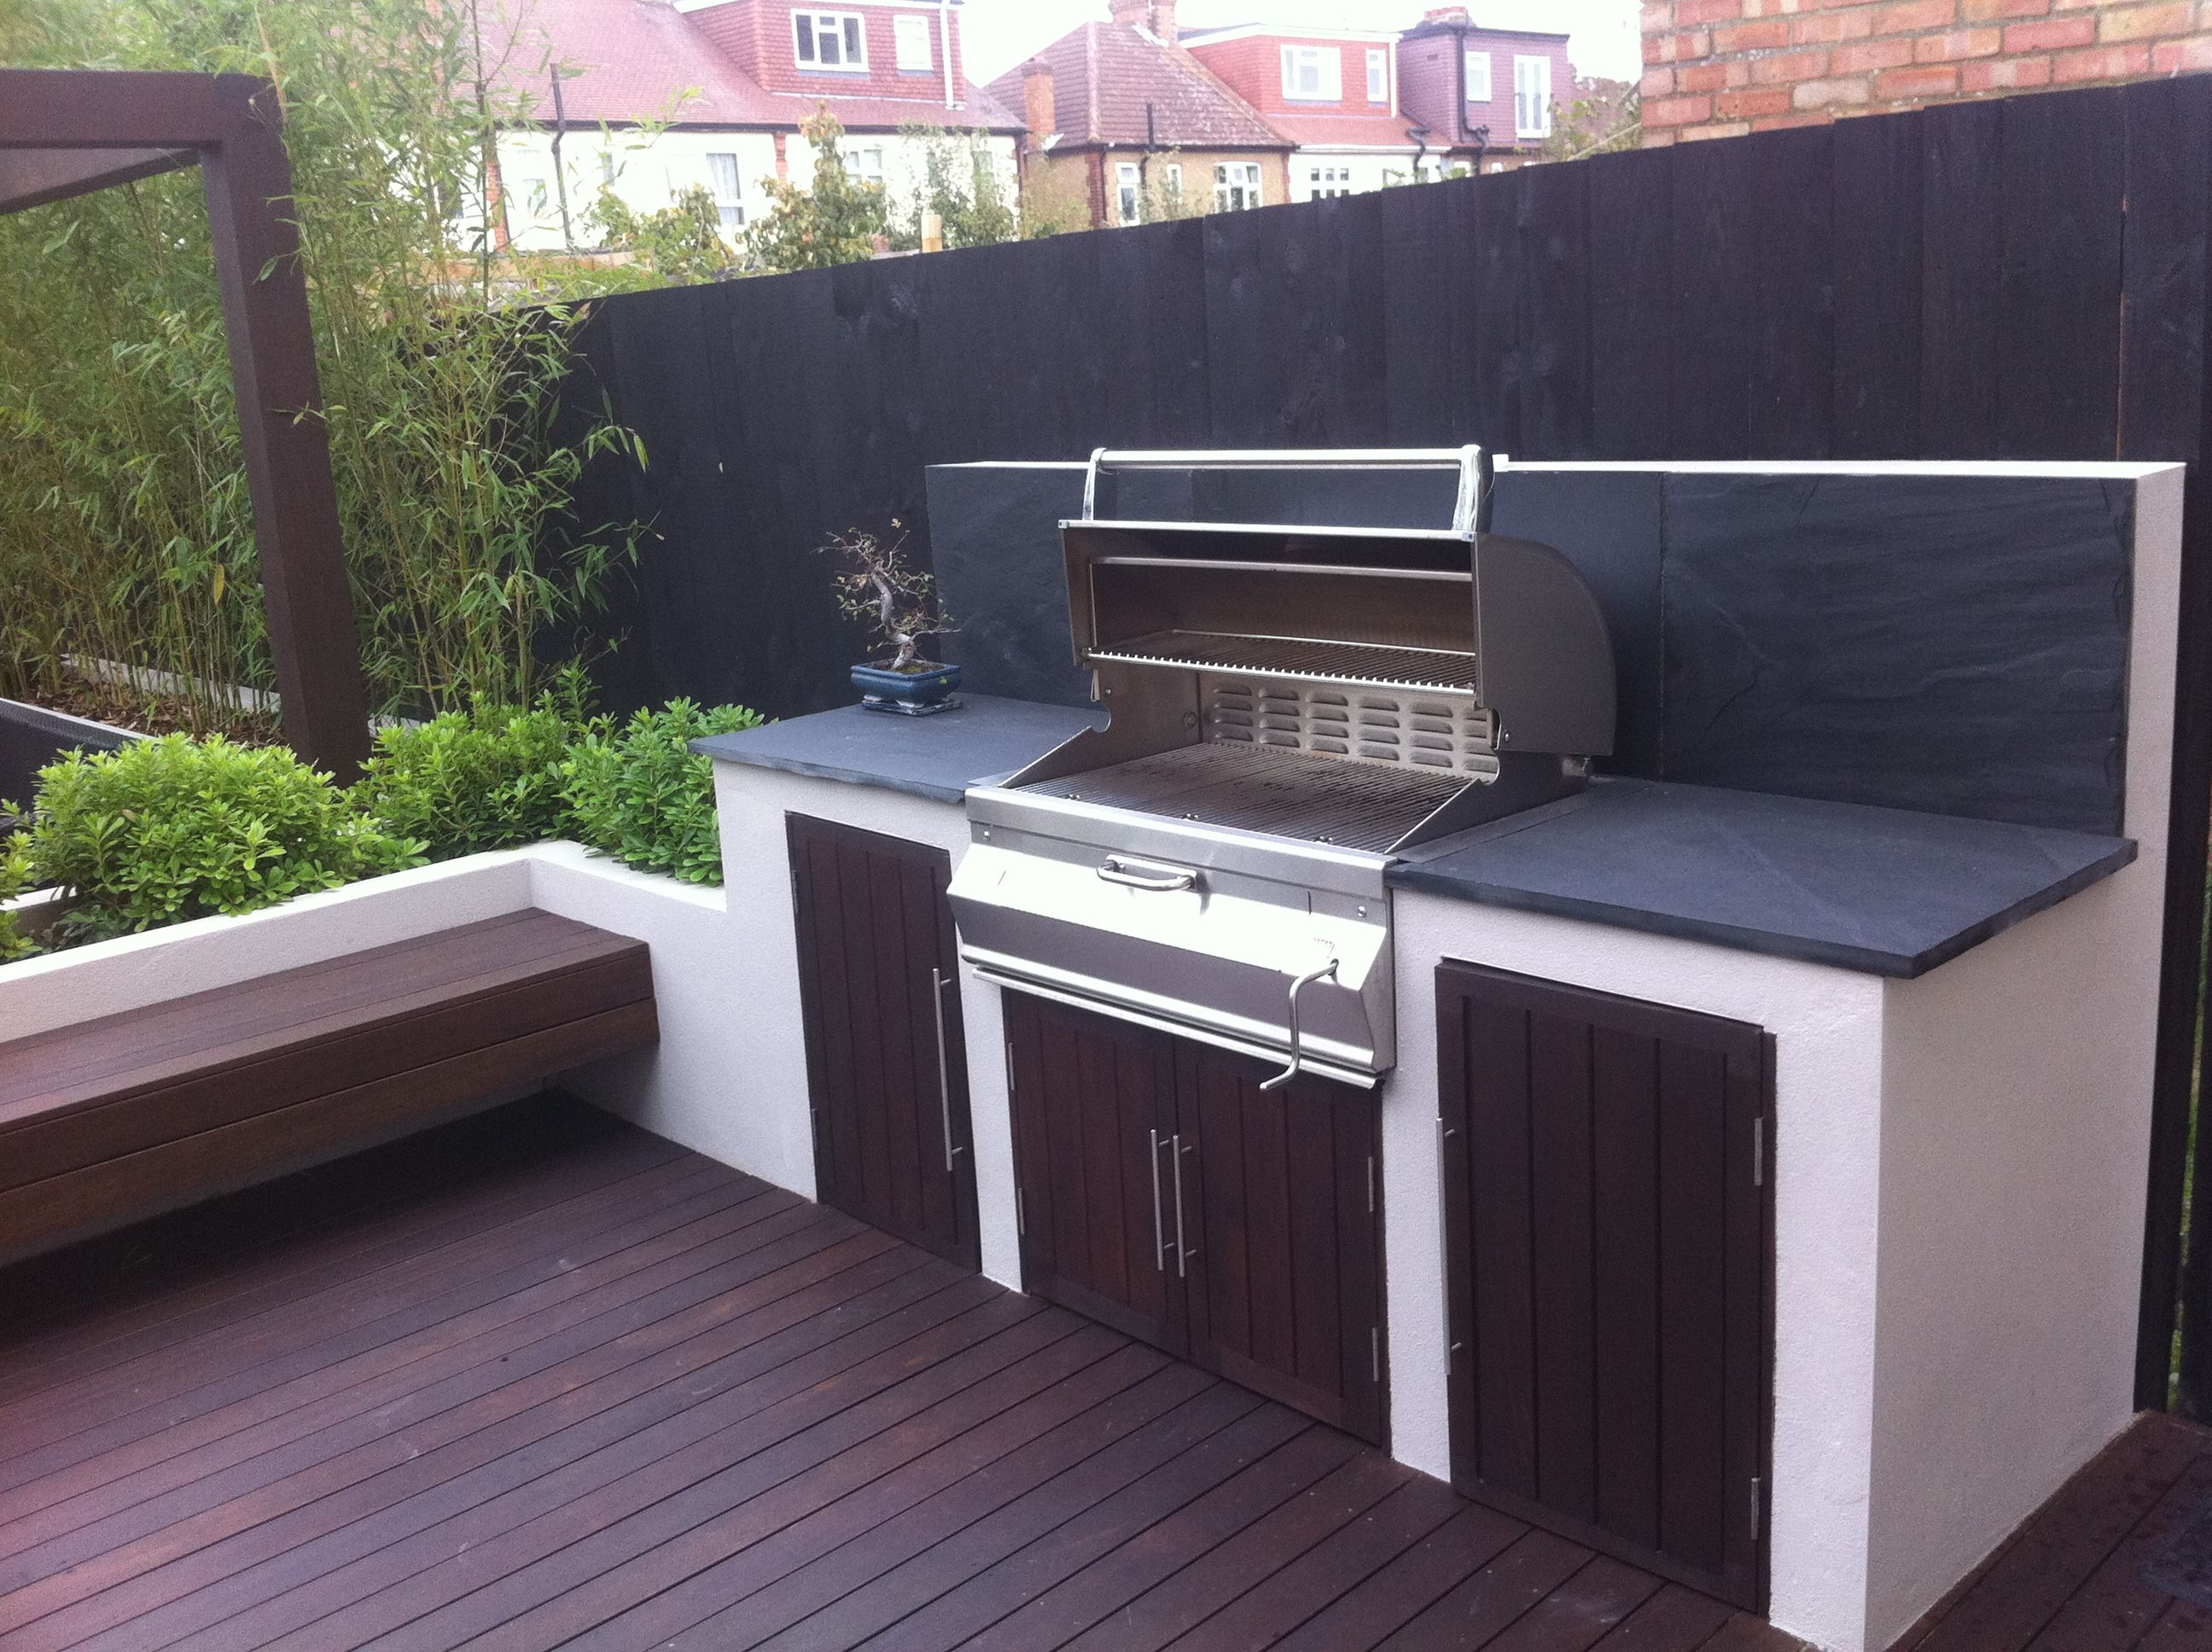 Built In BBQ   Make Wall Behind Higher? #outdoorbbq #deck #landscaping